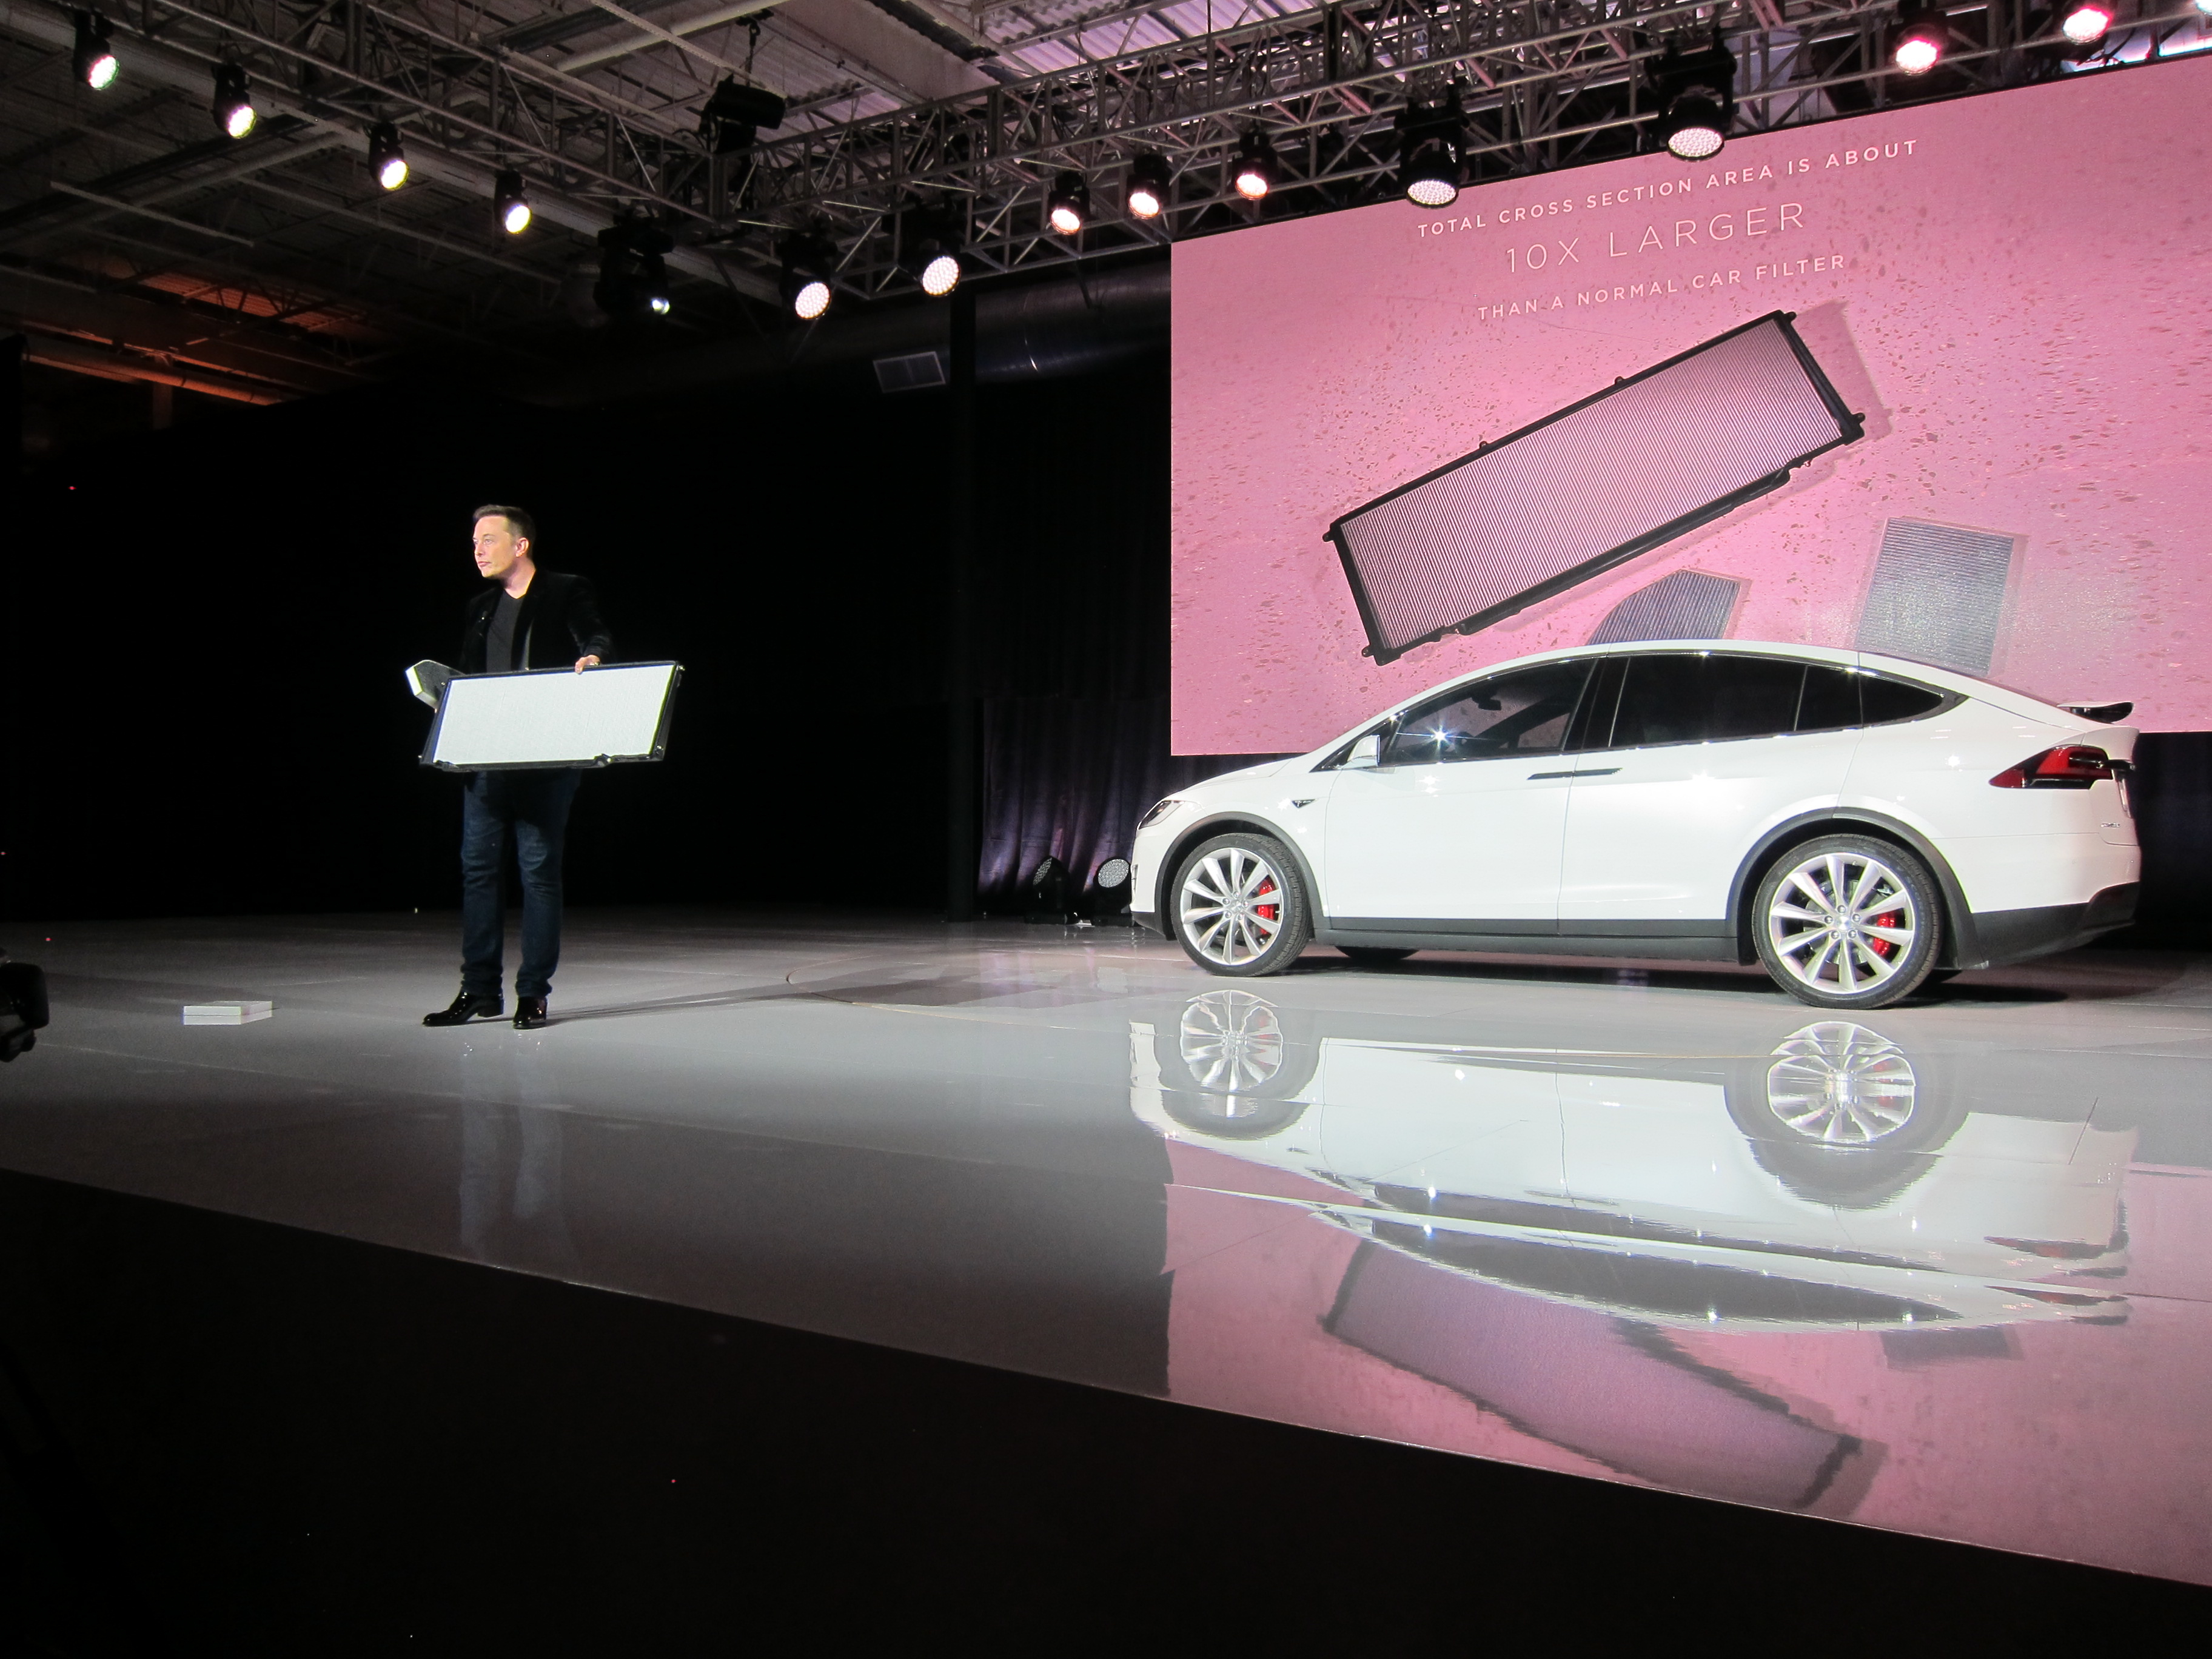 Tesla's Elon Musk Gives VW a Lesson in Clean Air at Model X Launch | HuffPost